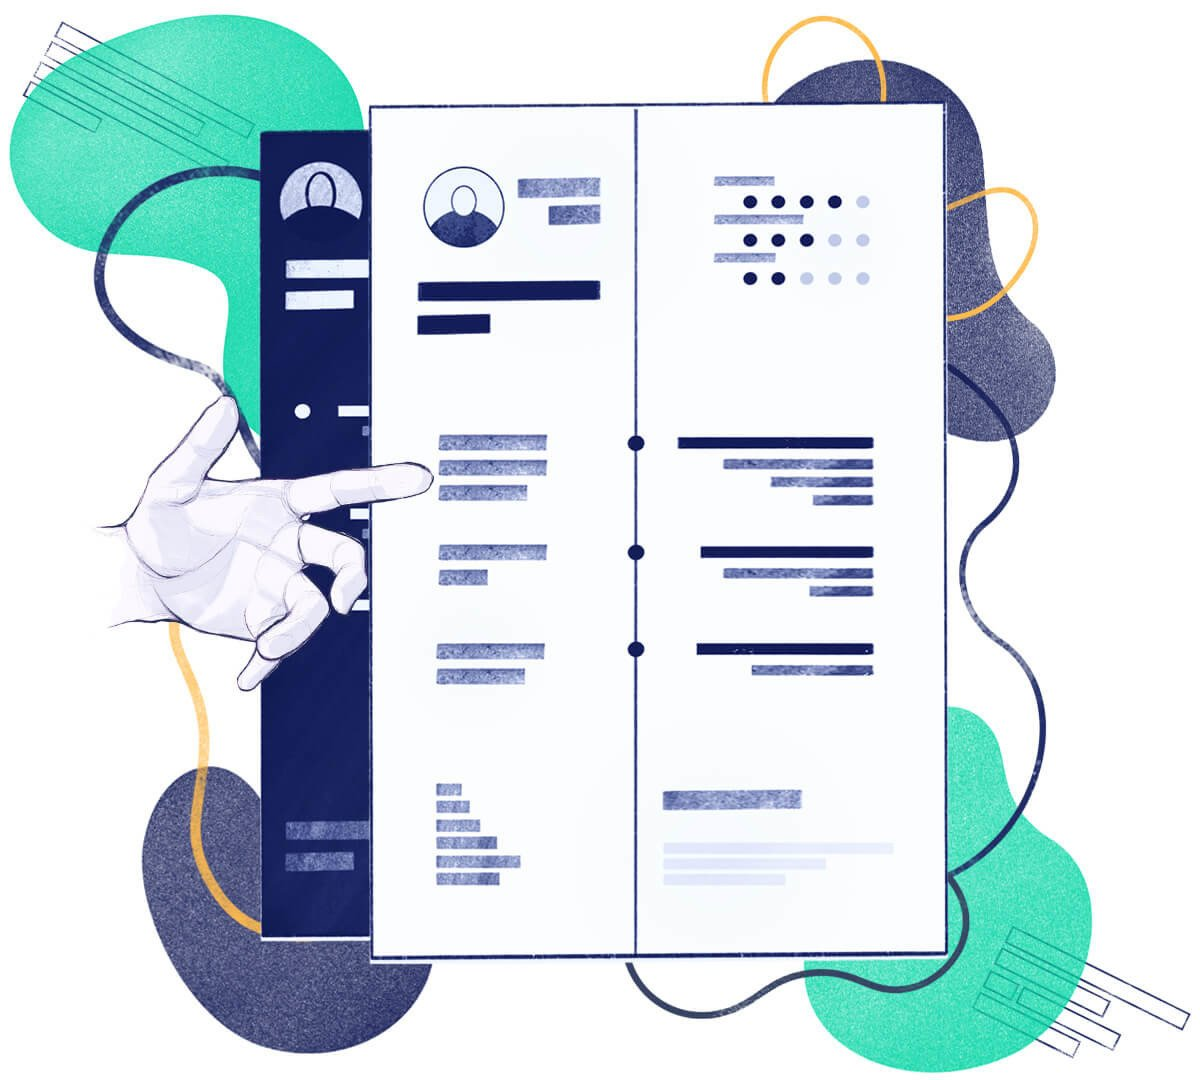 Perfect CV: How to Make a Great CV in 6 Steps [Guide]